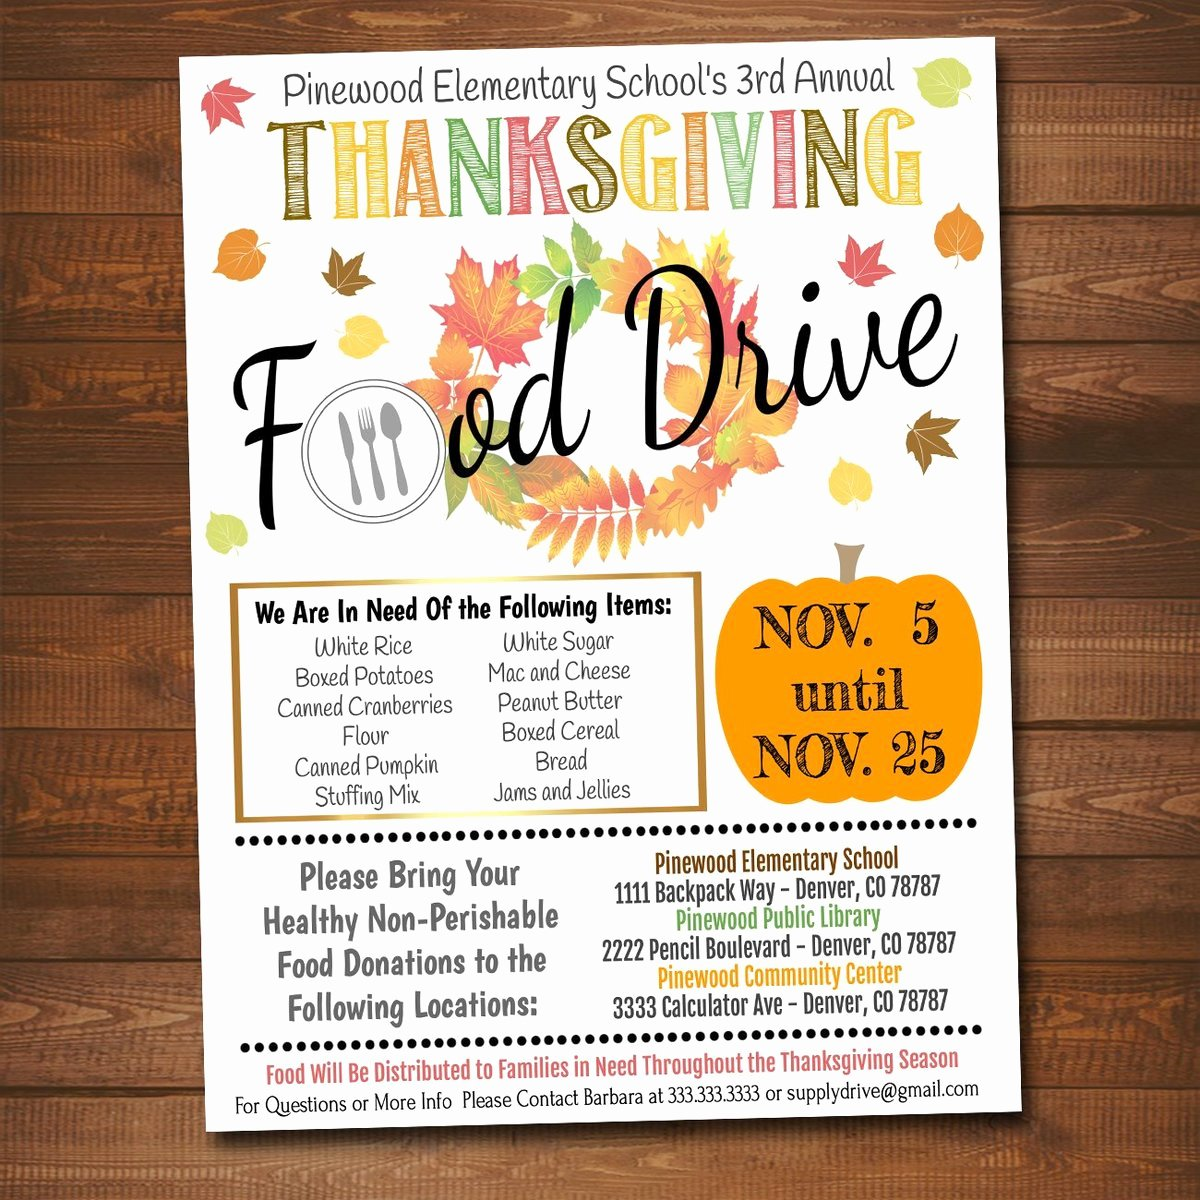 Thanksgiving Food Drive Flyer Beautiful Editable Fall Food Drive Flyer Printable Pta Pto Flyer School Church – Tidylady Printables